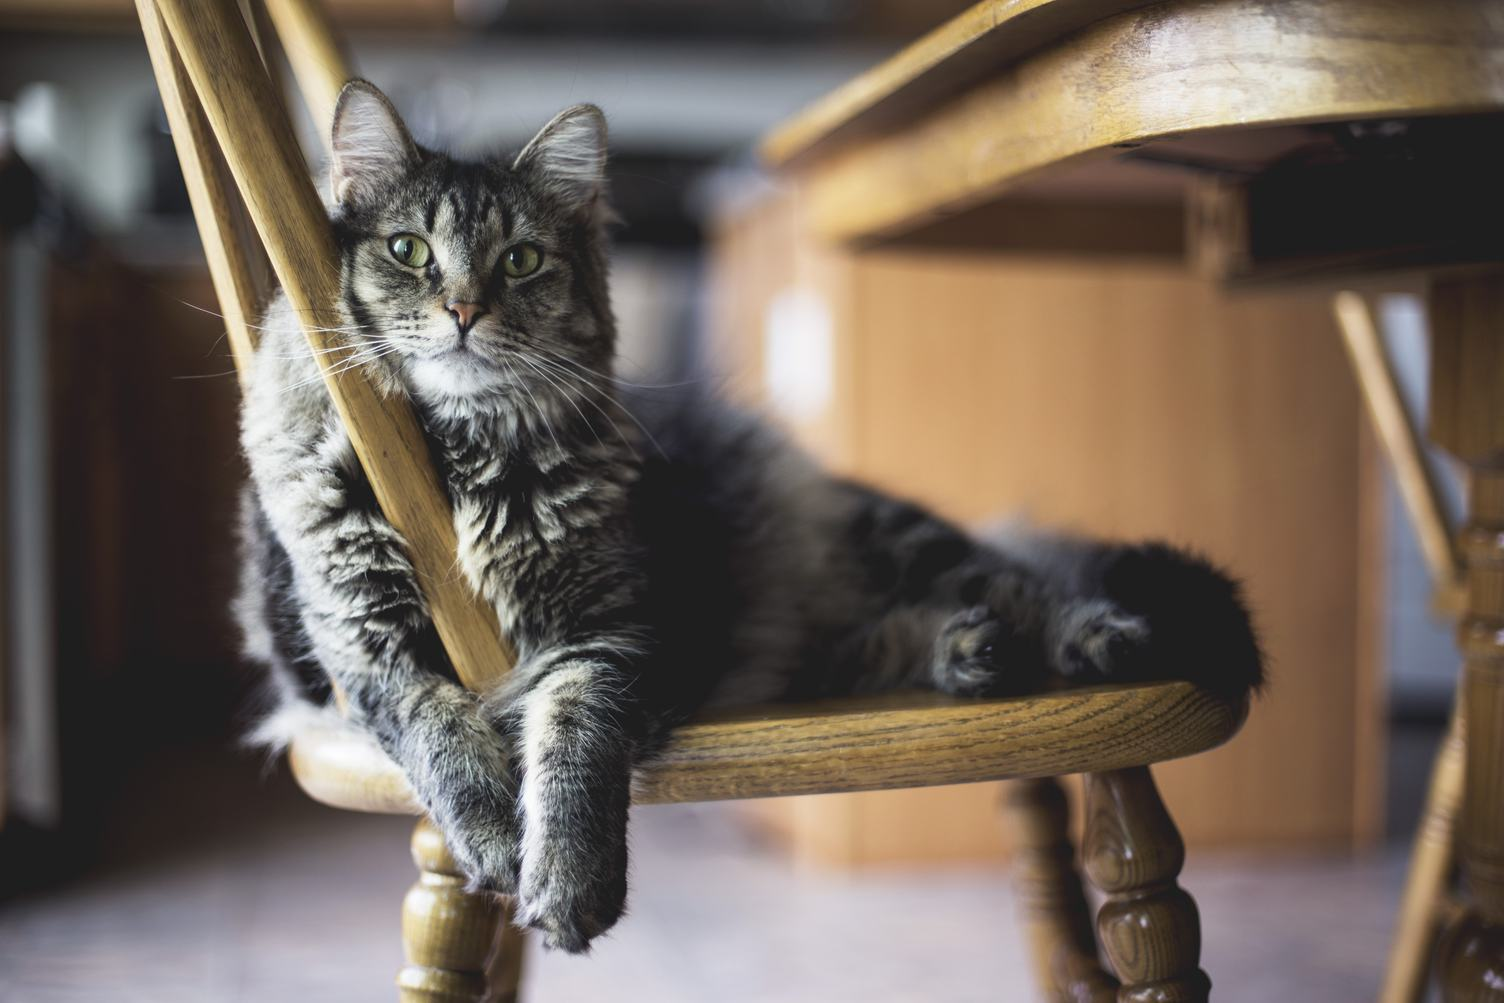 Cat Rests on a Chair